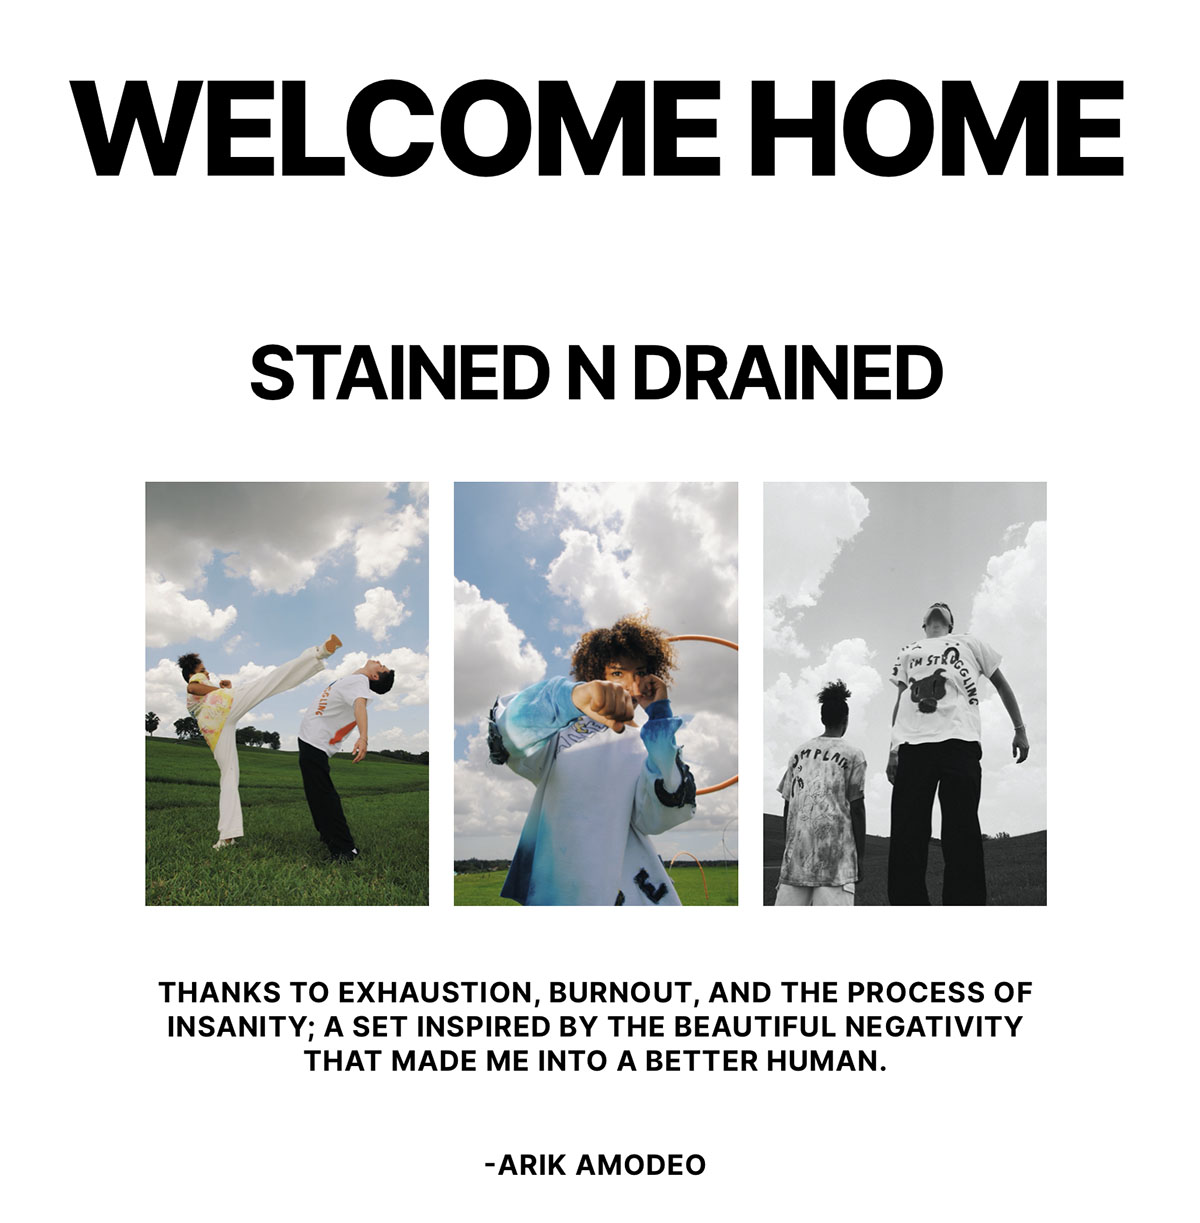 Welcome home, Stained N Drained, THANKS TO EXHAUSTION, BURNOUT, AND THE PROCESS OF INSANITY; A SET INSPIRED BY THE BEAUTIFUL NEGATIVITY THAT MADE ME INTO A BETTER HUMAN. -ARIK AMODEO